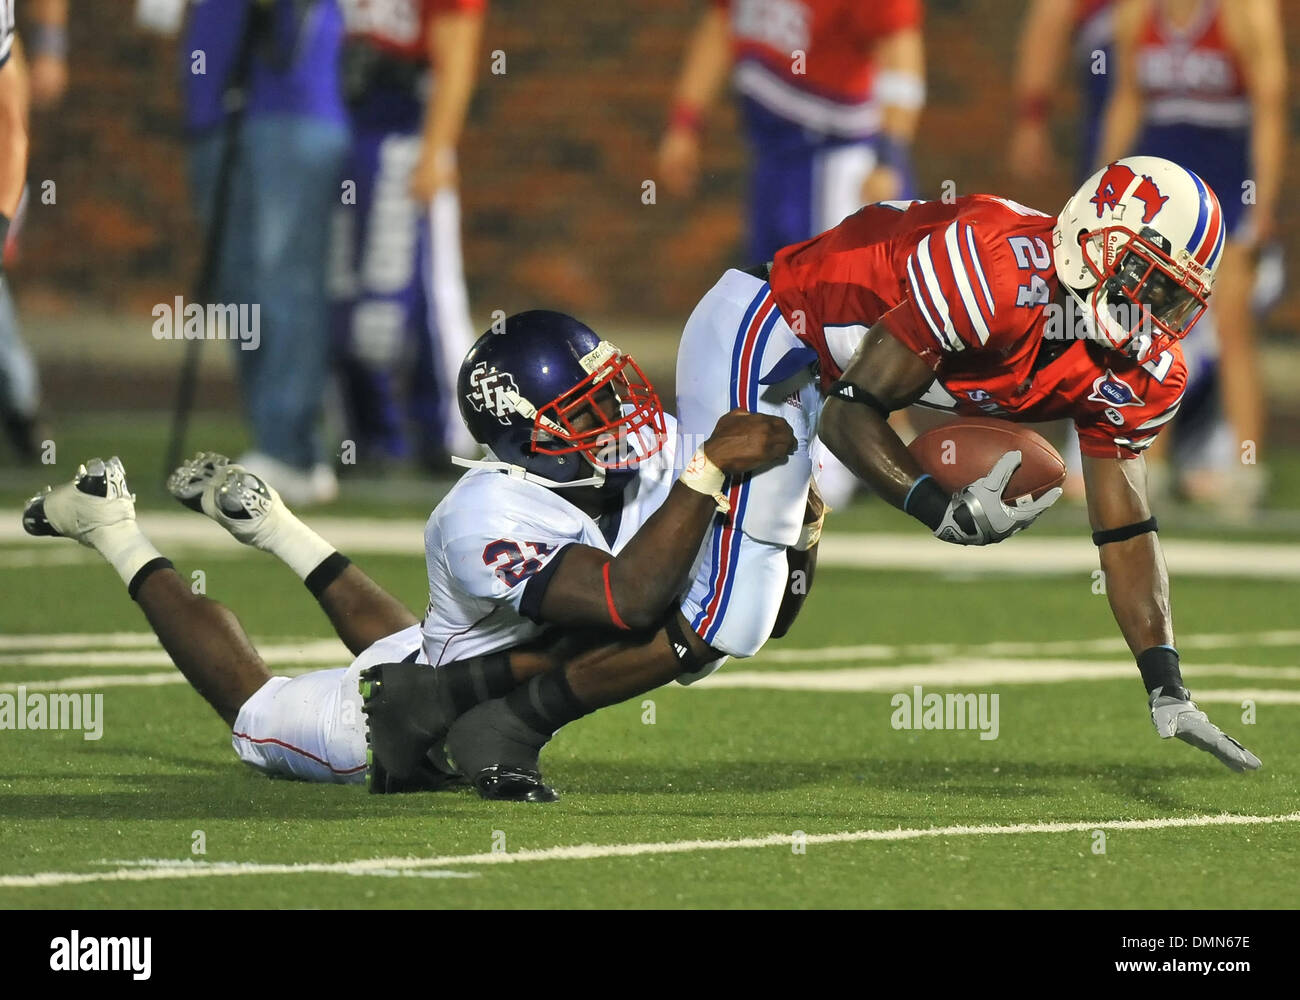 05 SEP 2009:  Stephen F Austin travels to Dallas to face the SMU Ponies in the season kickoff.  With a 4th quarter come back the Ponies win 31-23 over SFA.  SMU WR Aldrick Robinson gets tackled by DB Chad Haynes. (Credit Image: © Southcreek Global/ZUMApress.com) - Stock Image